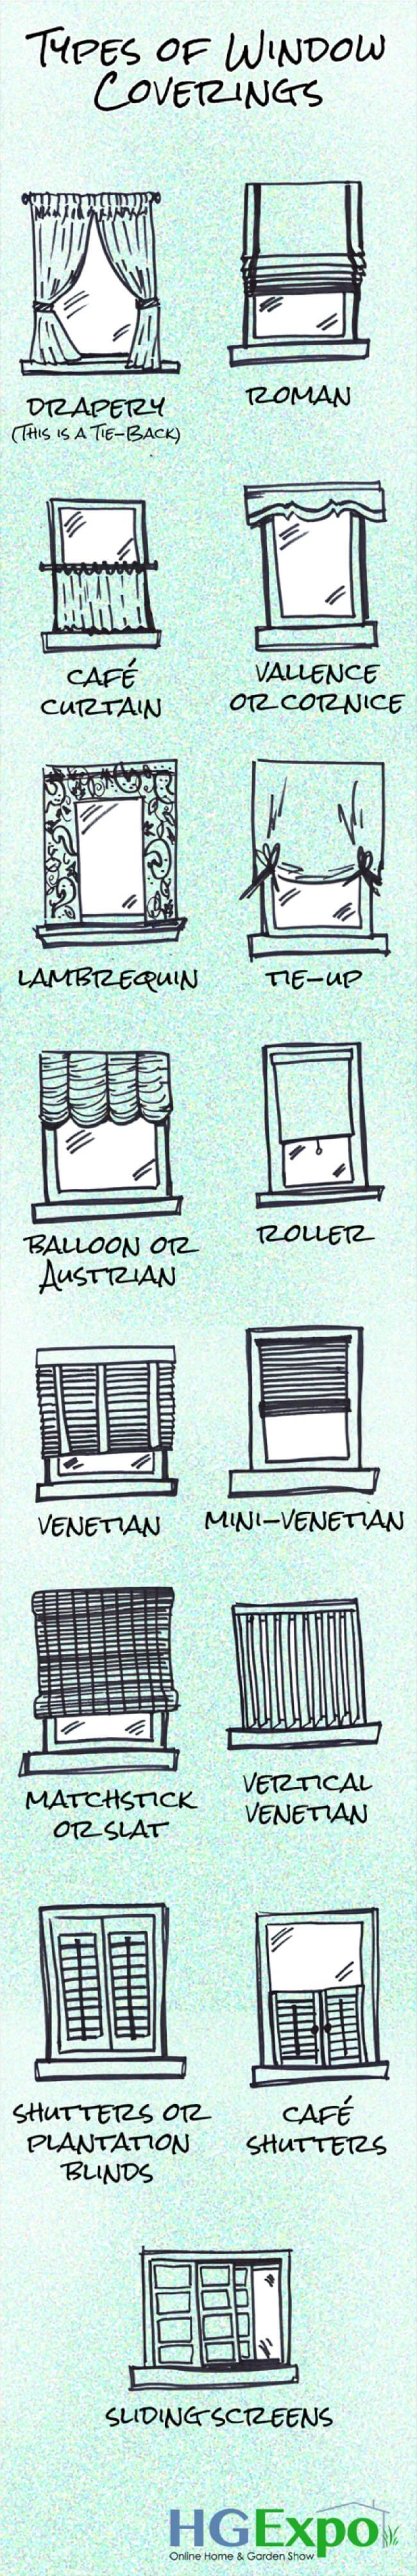 types-of-window-coverings-tips-tipsographic-main